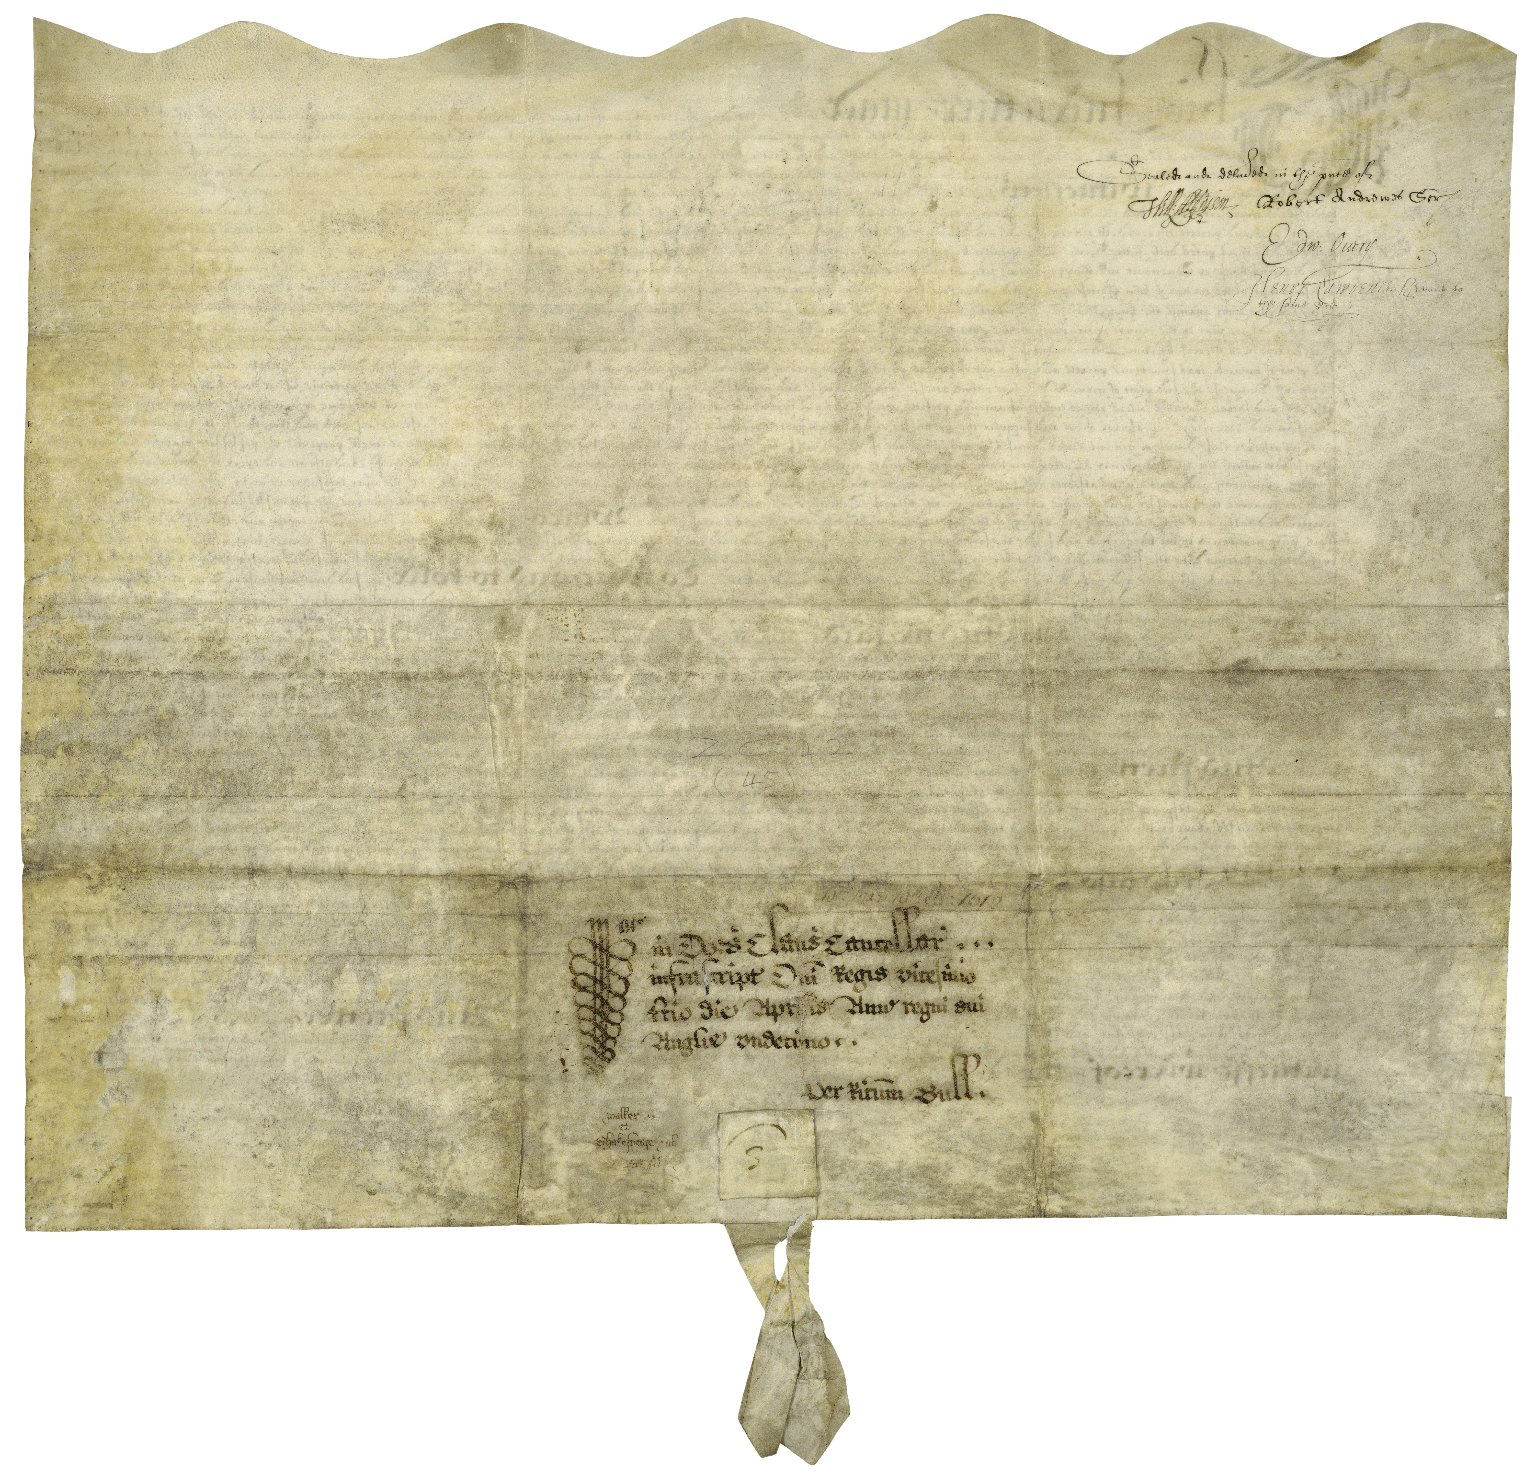 Bargain and sale from Henry Walker, citizen and minstrel of London, to William Shakespeare of Stratford-upon-Avon, Gent., and to his trustees, William Johnson, citizen and vintner of London, John Jackson, and John Hemmyng of London, Gents. [manuscript], 1612/13 March 10.